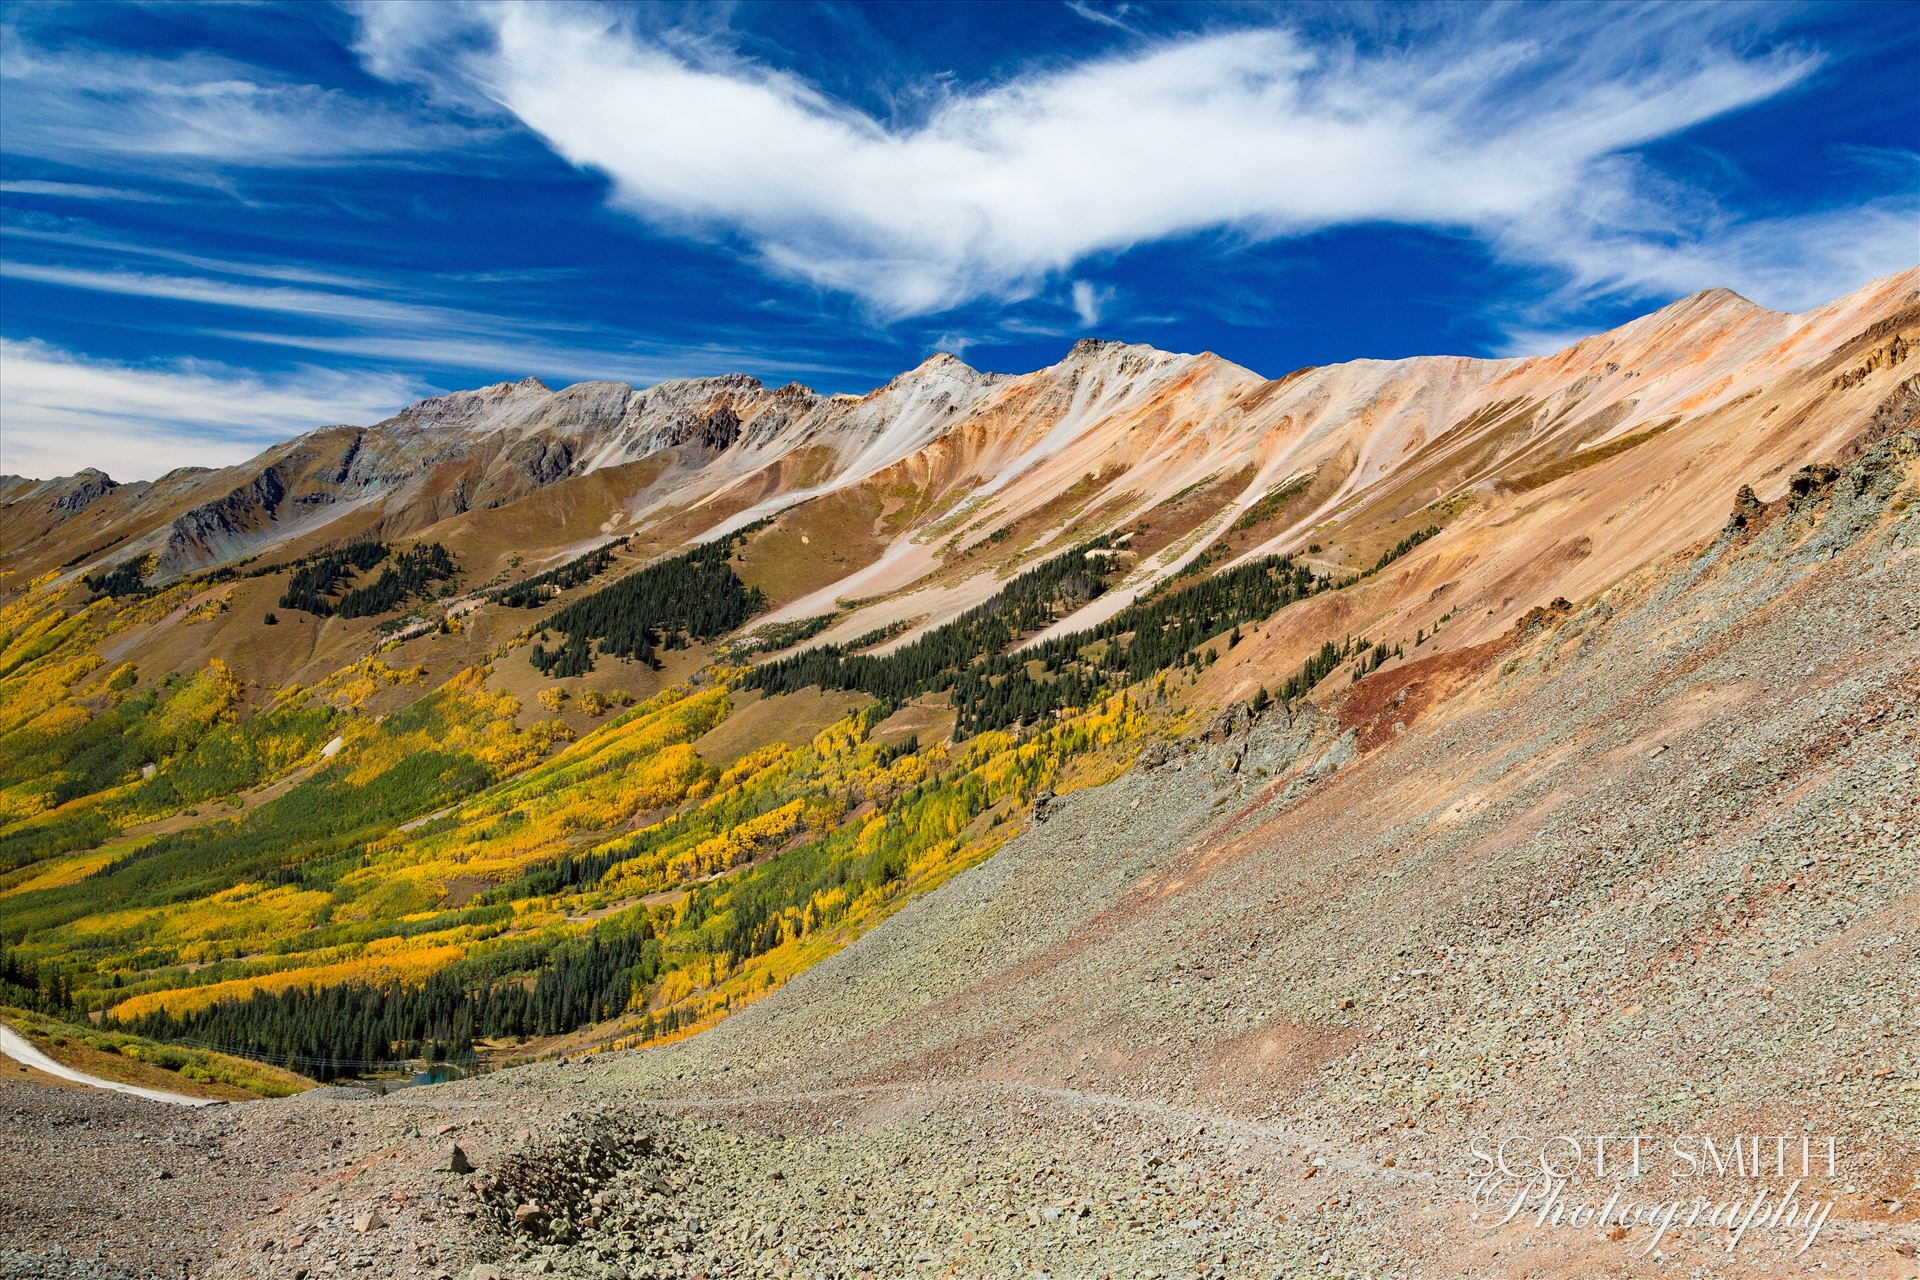 Ophir Pass 1 - Just west of the Ophir Pass summit, between Ouray and Silverton Colorado in the fall. by D Scott Smith